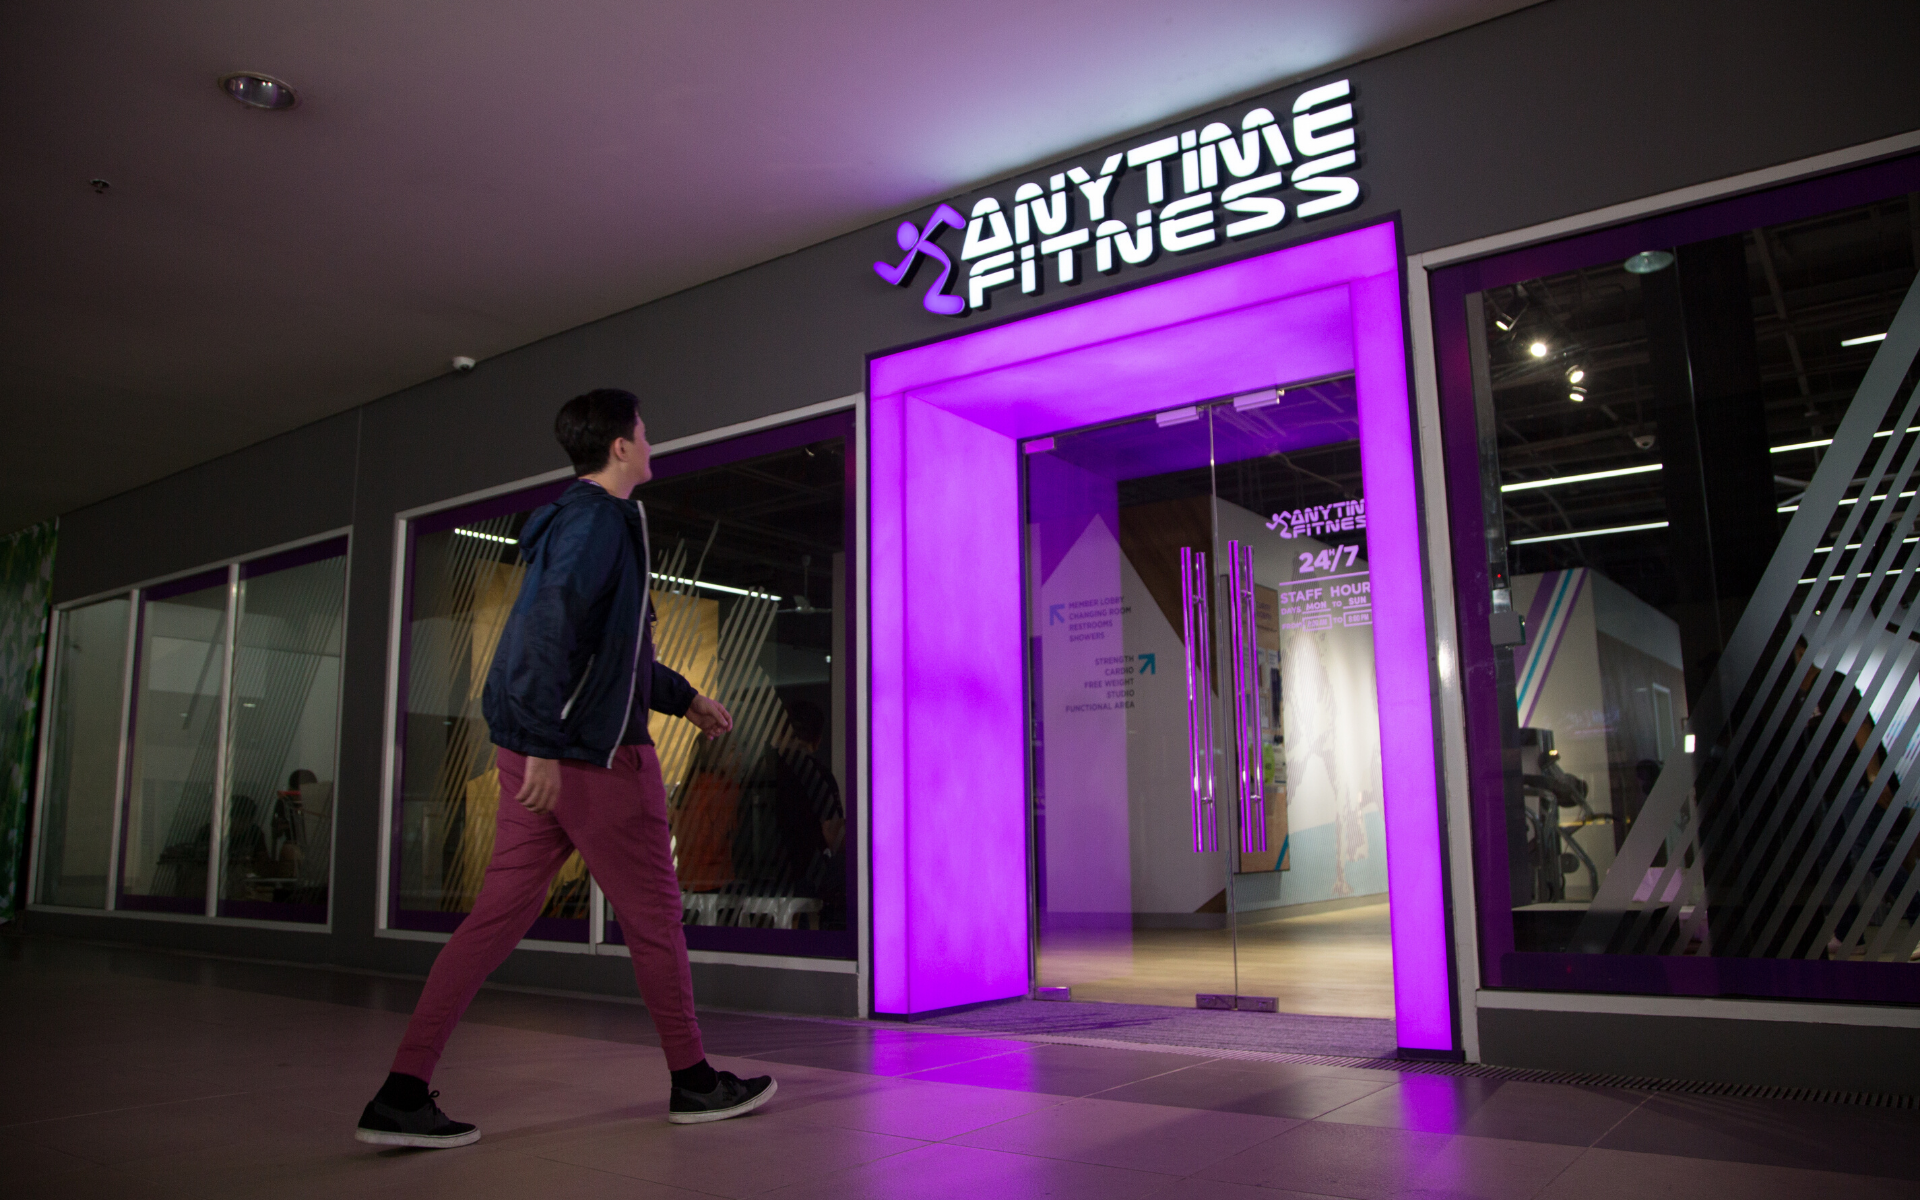 Rey Bolivar, CEO Of Anytime Fitness, On Expanding The Business In The Coronavirus Era